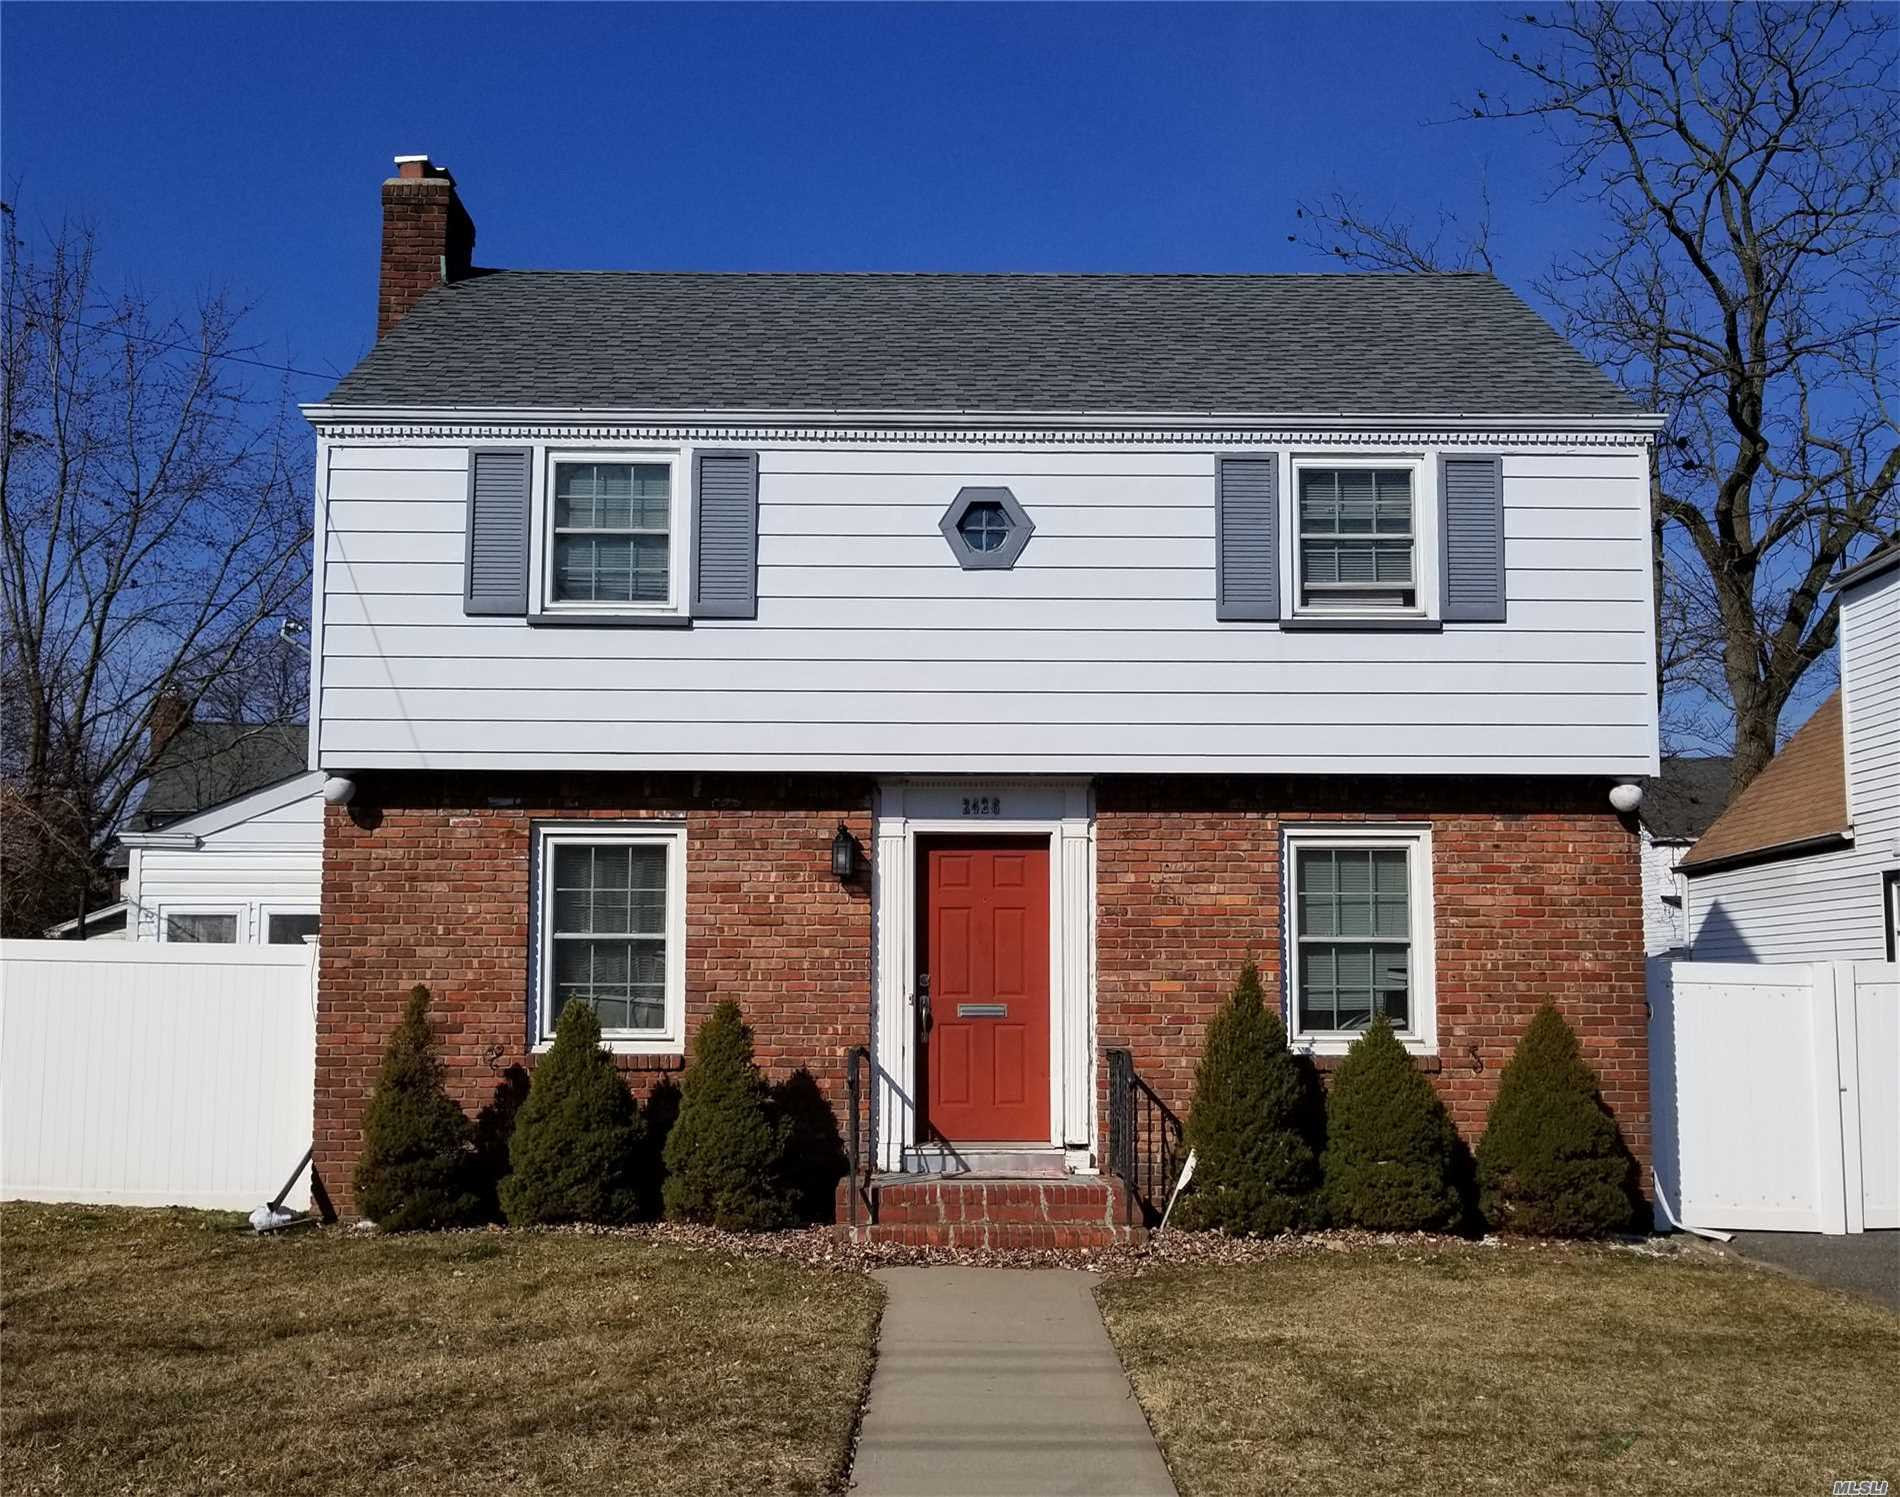 Great Colonial Conveniently Located Near Parks, Shopping, Restaurants etc. Large LR with FPL, French Doors To Deck and Yard. Hardwood Floors, Nice Yard, Garage.